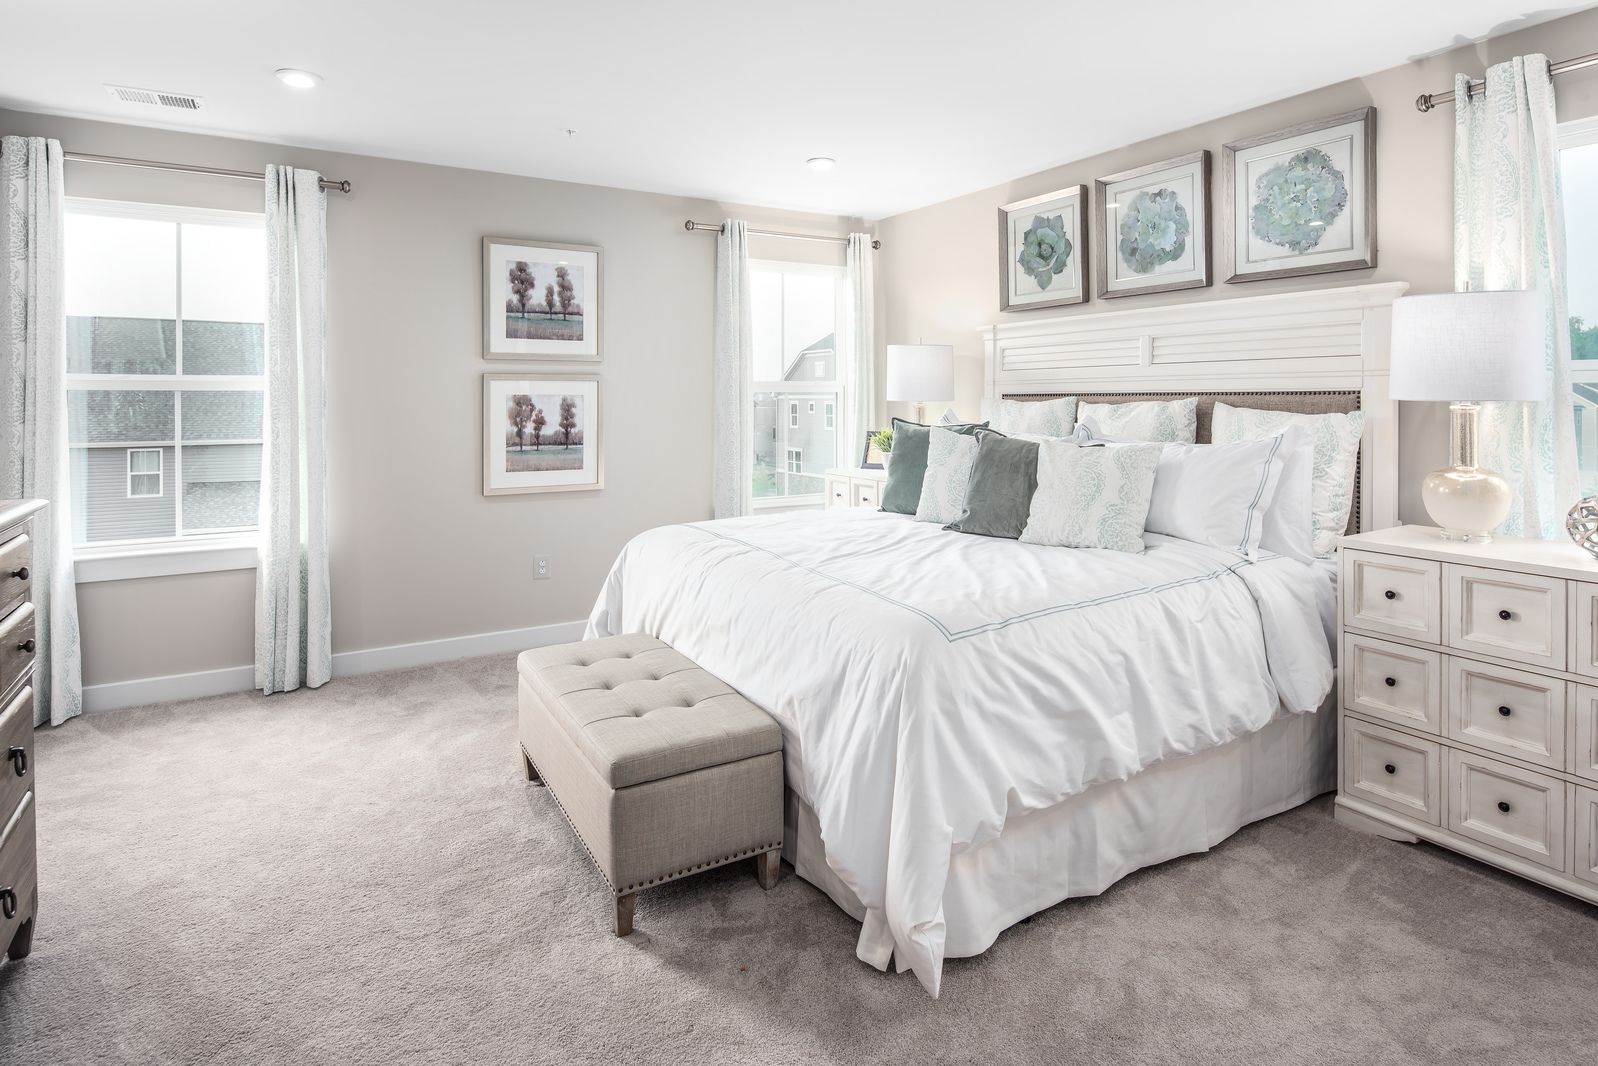 Bedroom featured in the Ballenger By Ryan Homes in Outer Banks, NC